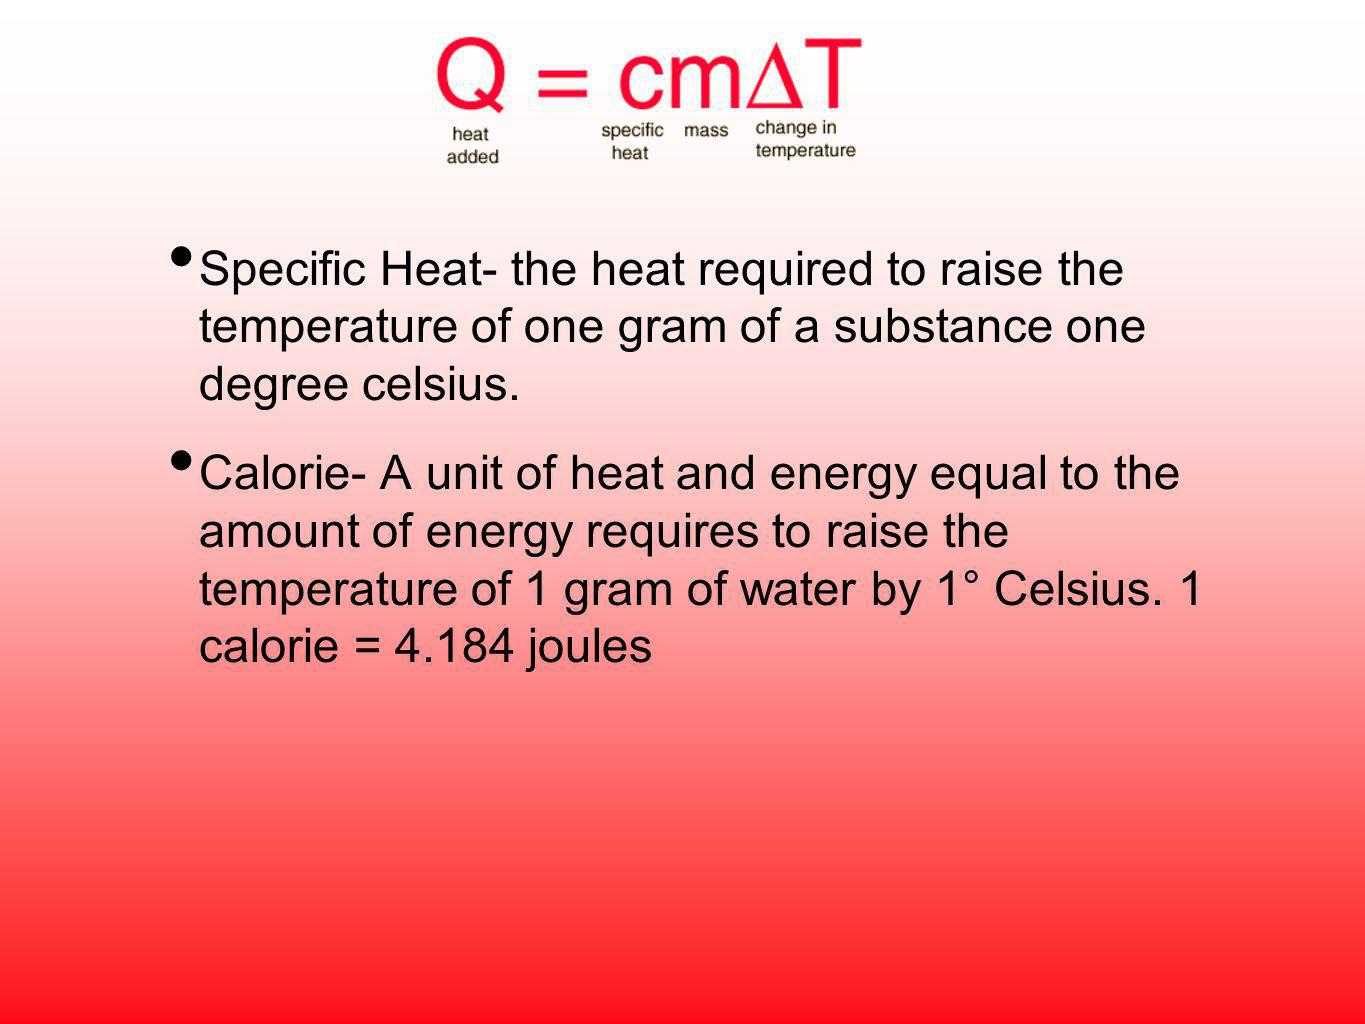 Specific Heat- the heat required to raise the temperature of one gram of a substance one degree celsius.